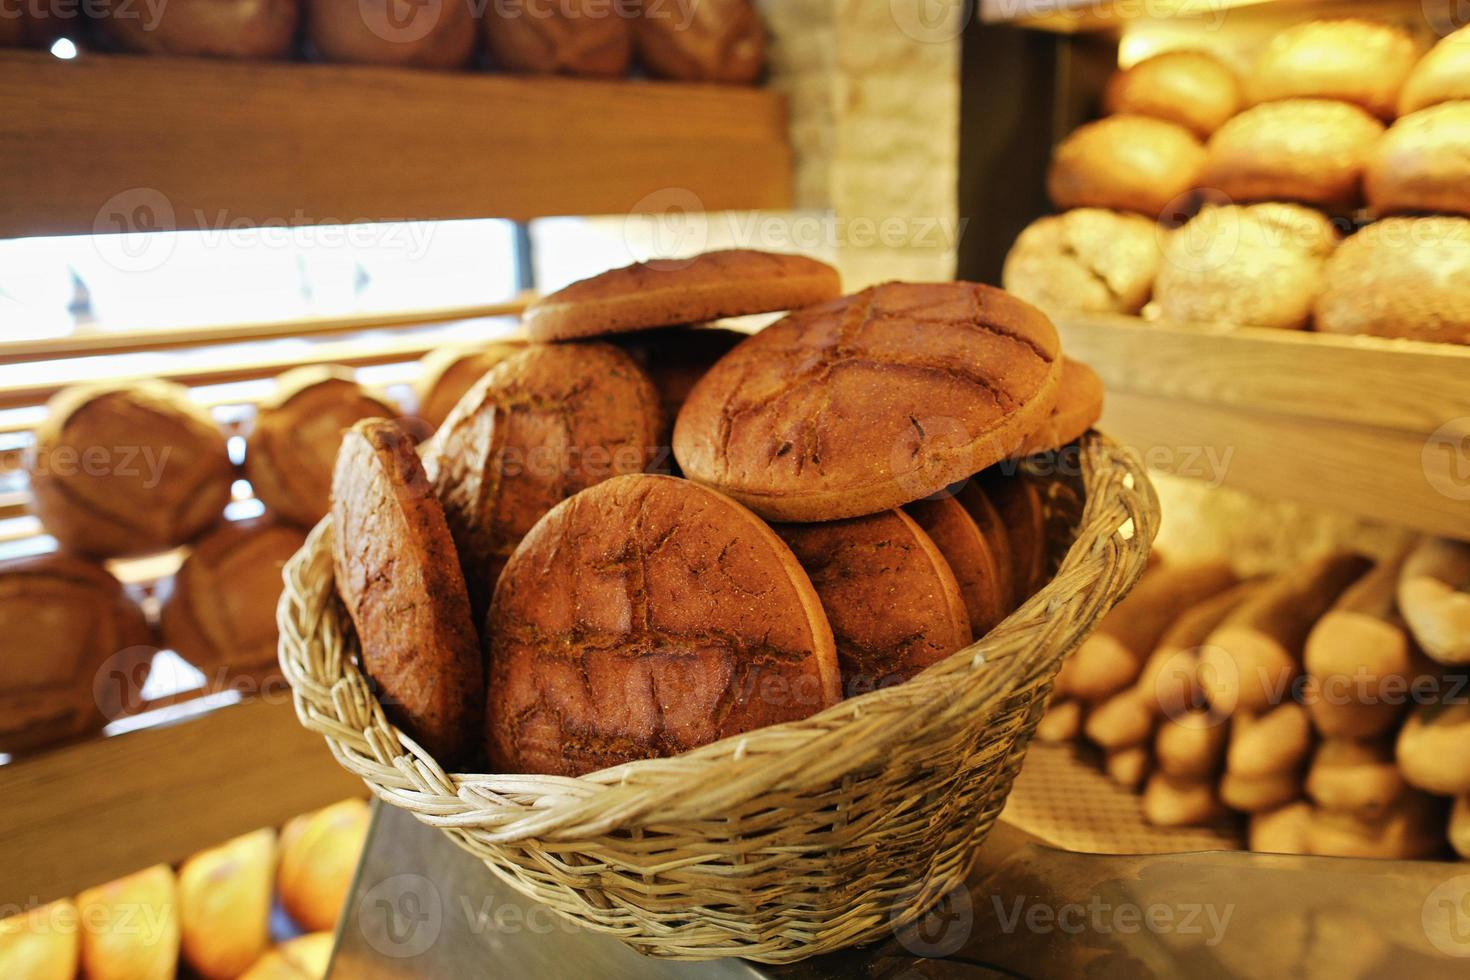 Basket and Corn Bread, Pastry, Bakery and Bakery photo